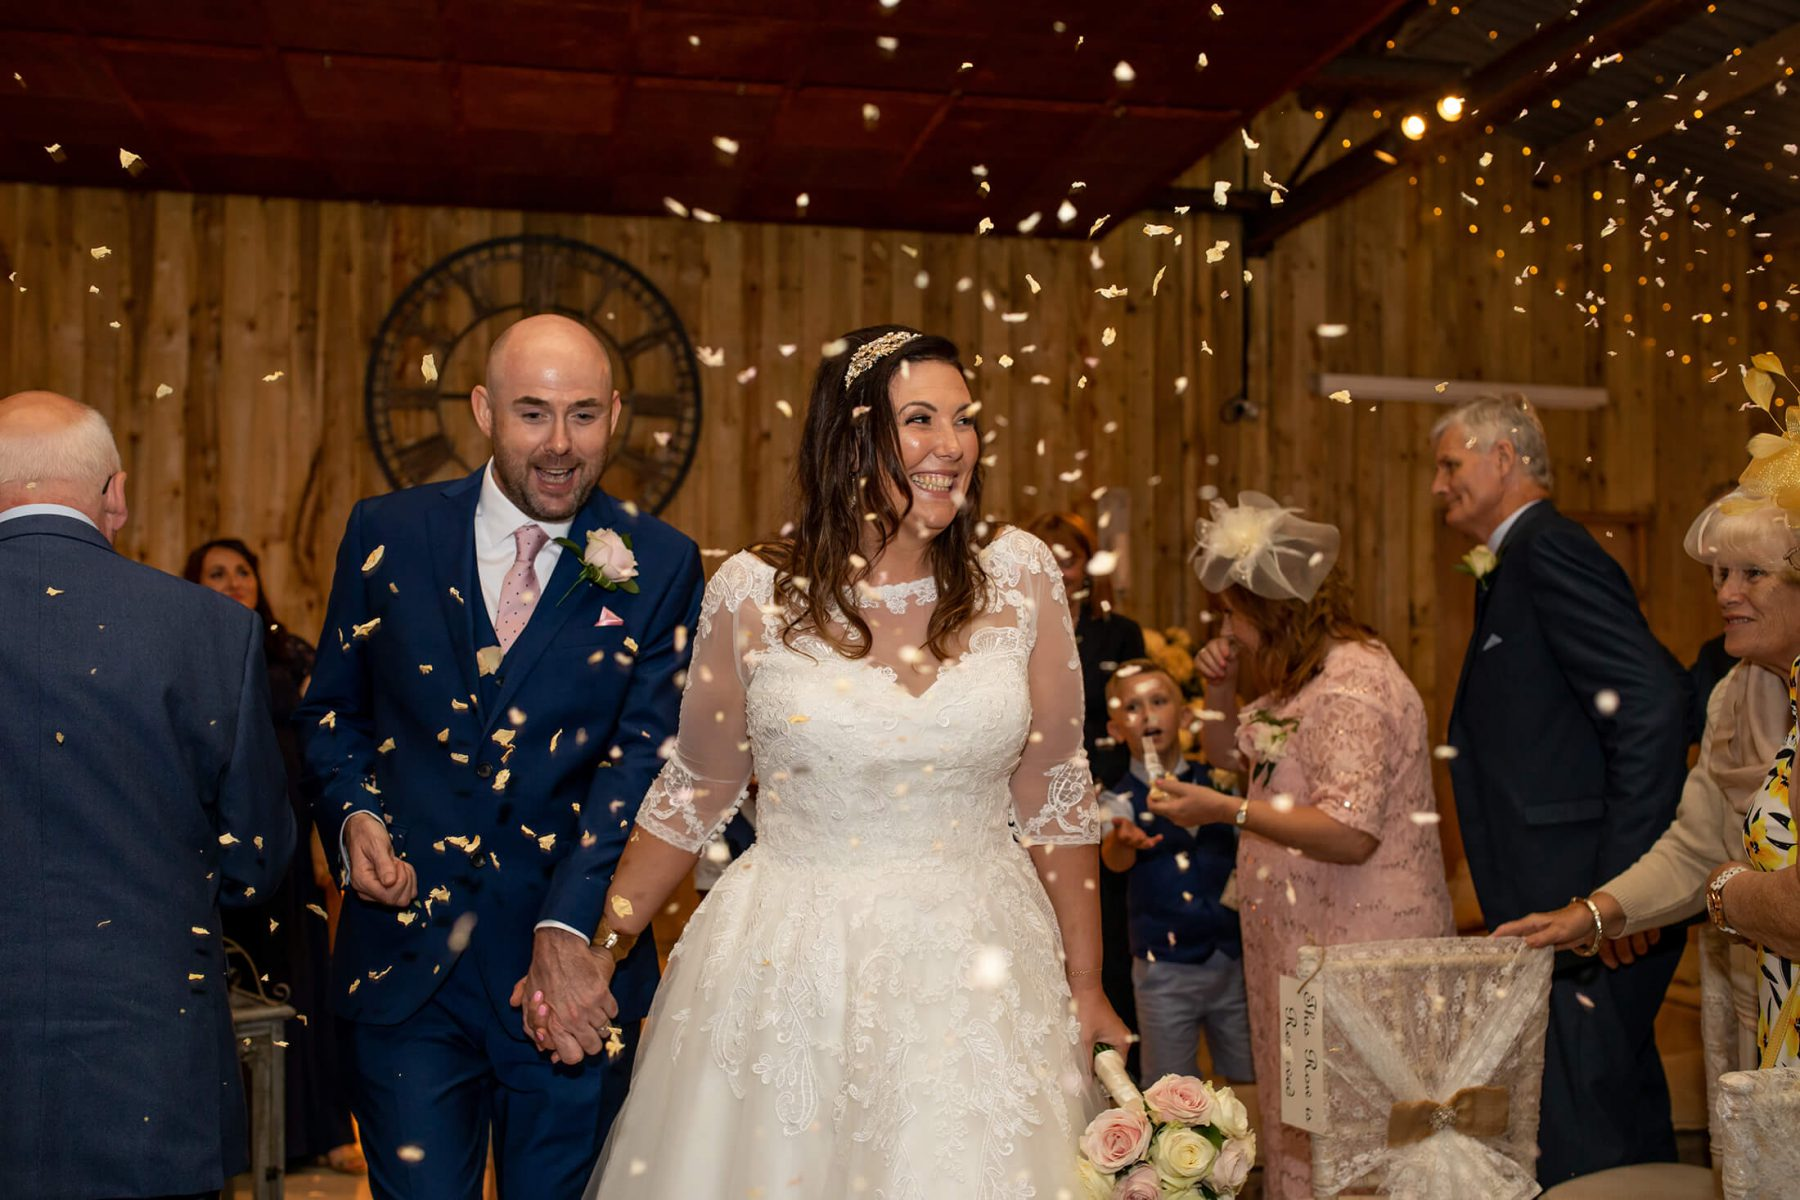 Confetti is thrown as the bride and groom leave the ceremony room.